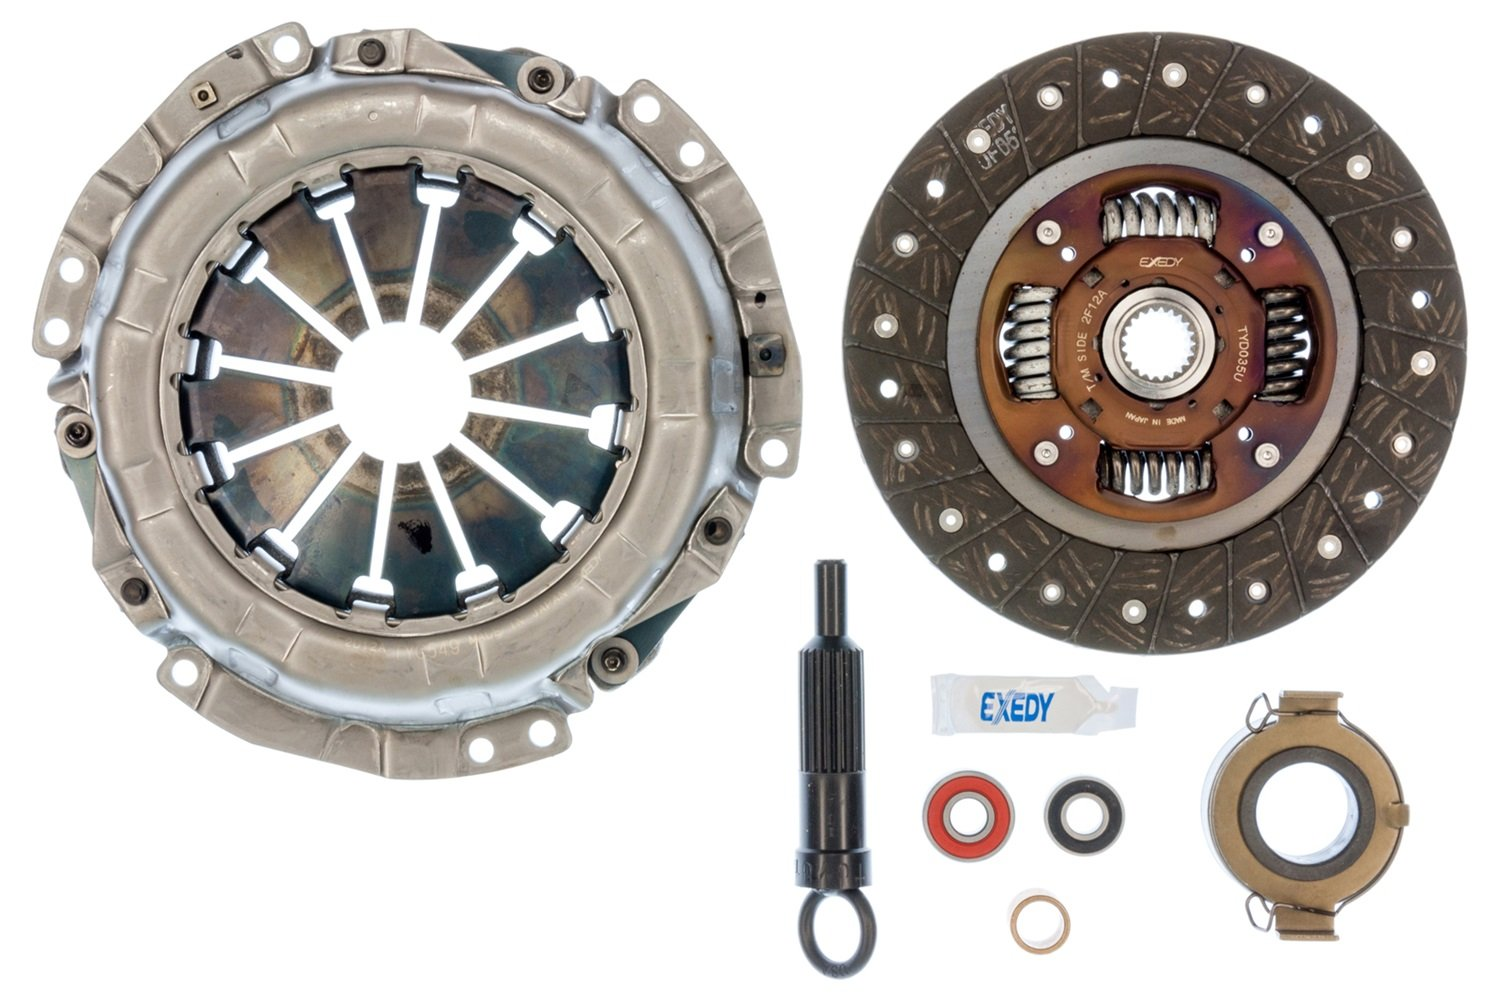 EXEDY KTY18 OEM Replacement Clutch Kit EXEDY Racing Clutch